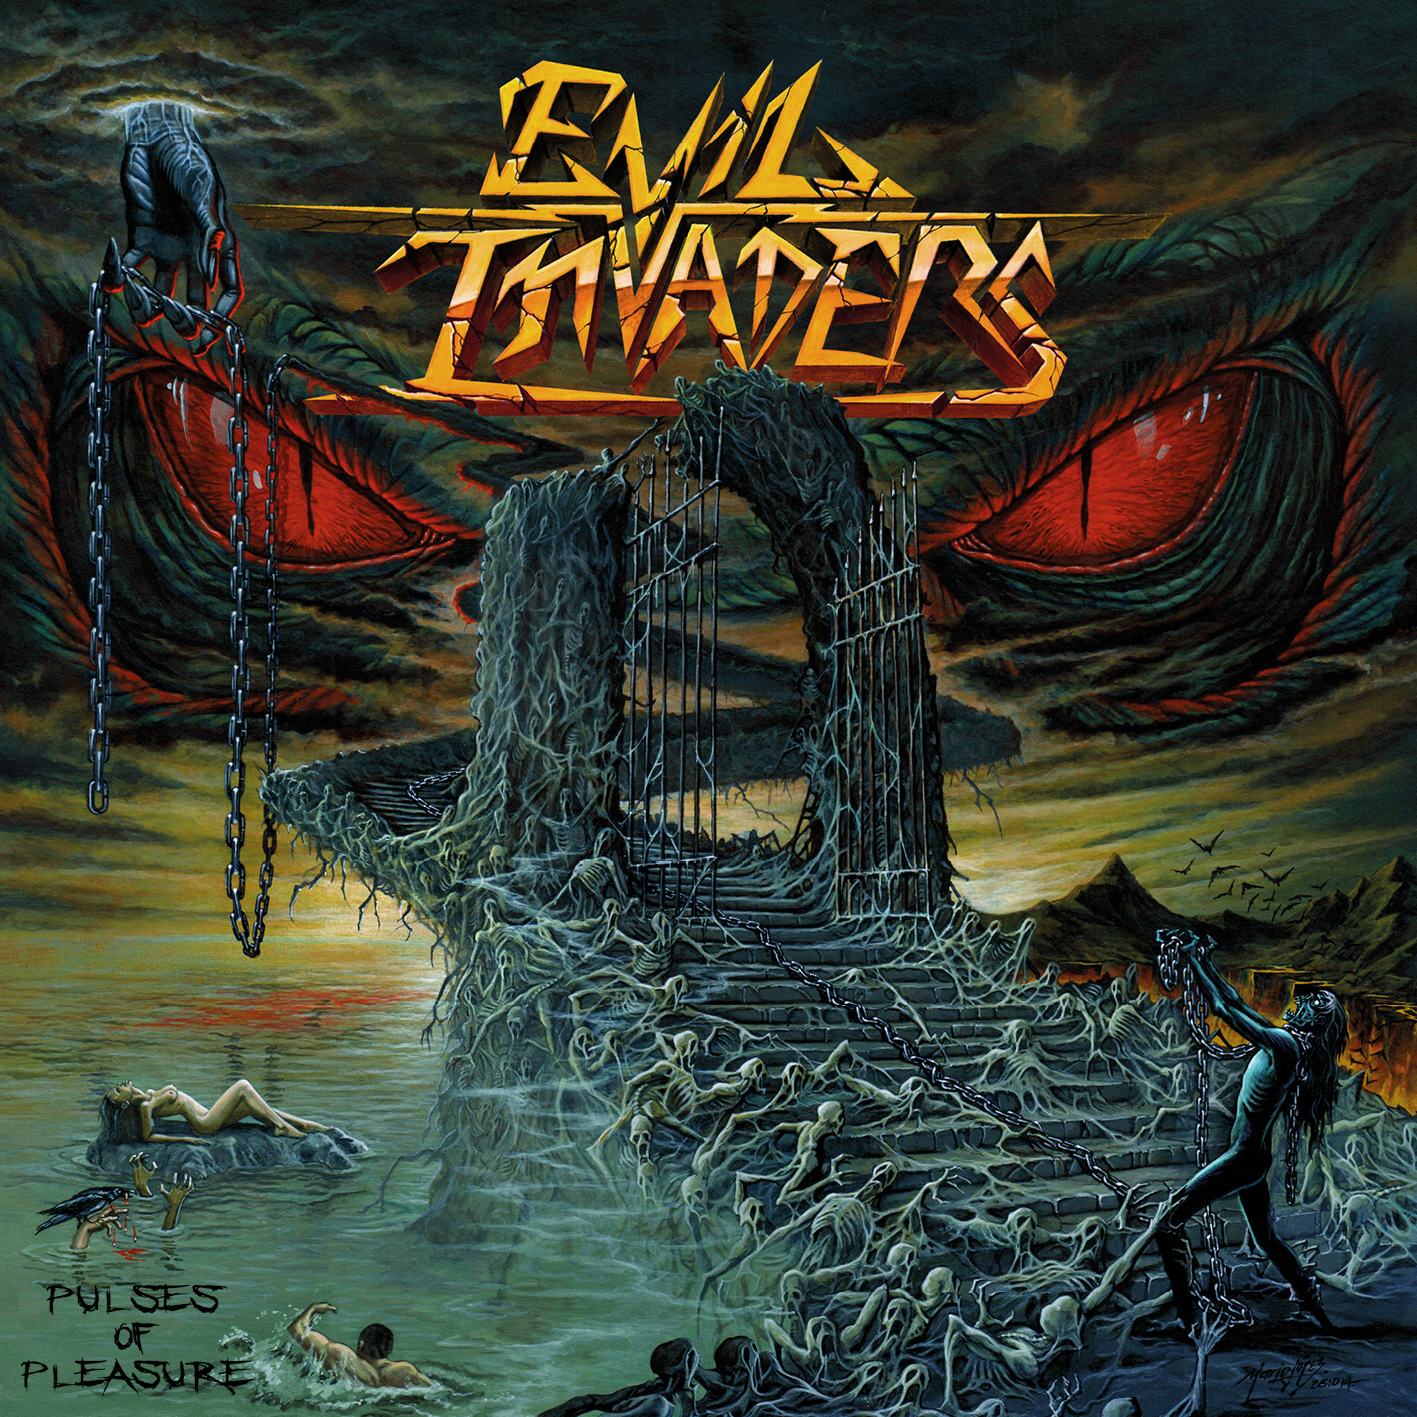 Evil Invaders – Pulses of Pleasure Review